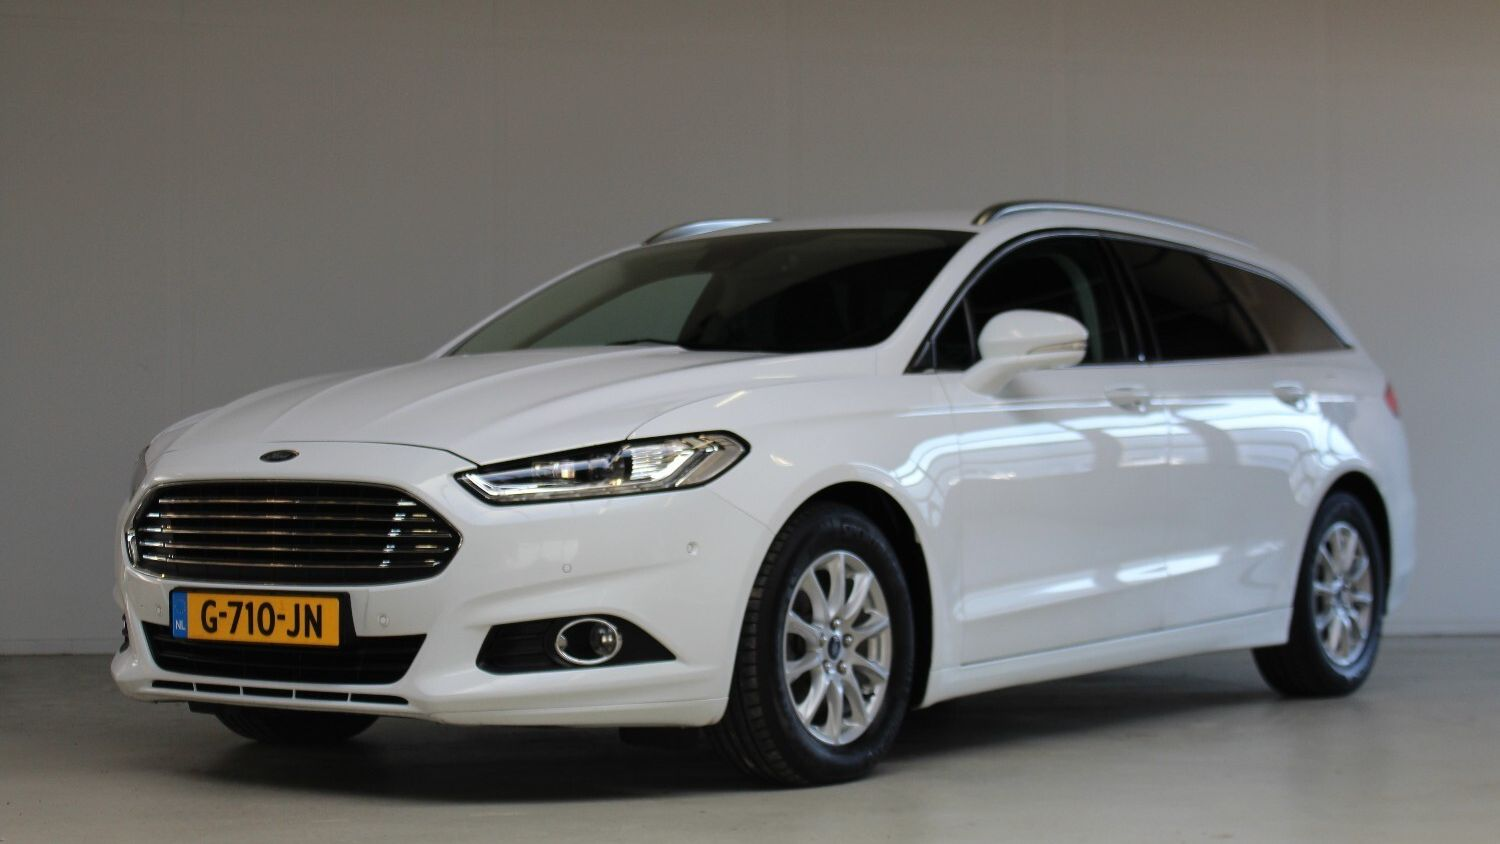 Ford Mondeo Station 2016 G-710-JN 1